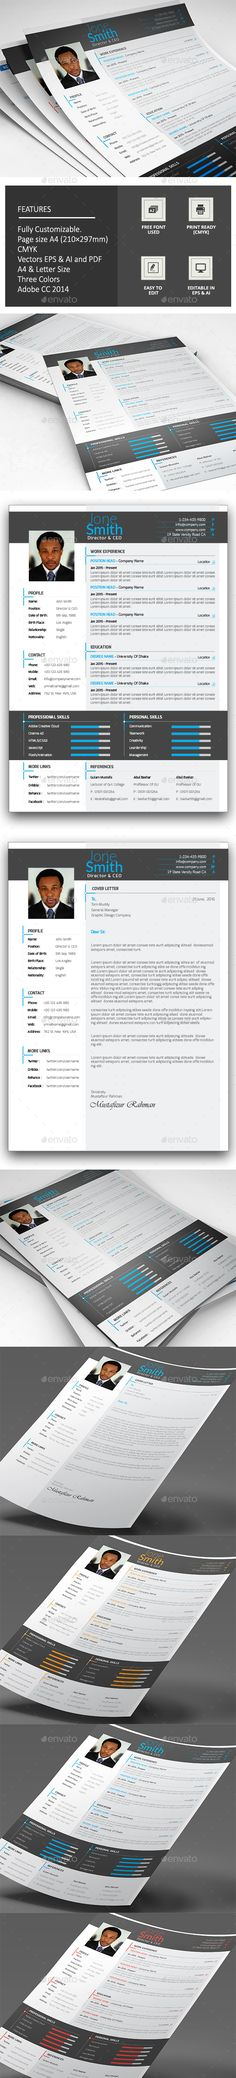 cv and covering letter%0A Resume   CV  Cover Letter  Portfolio   Fontslogosicons   Pinterest    Resume  Cover letters and Letters